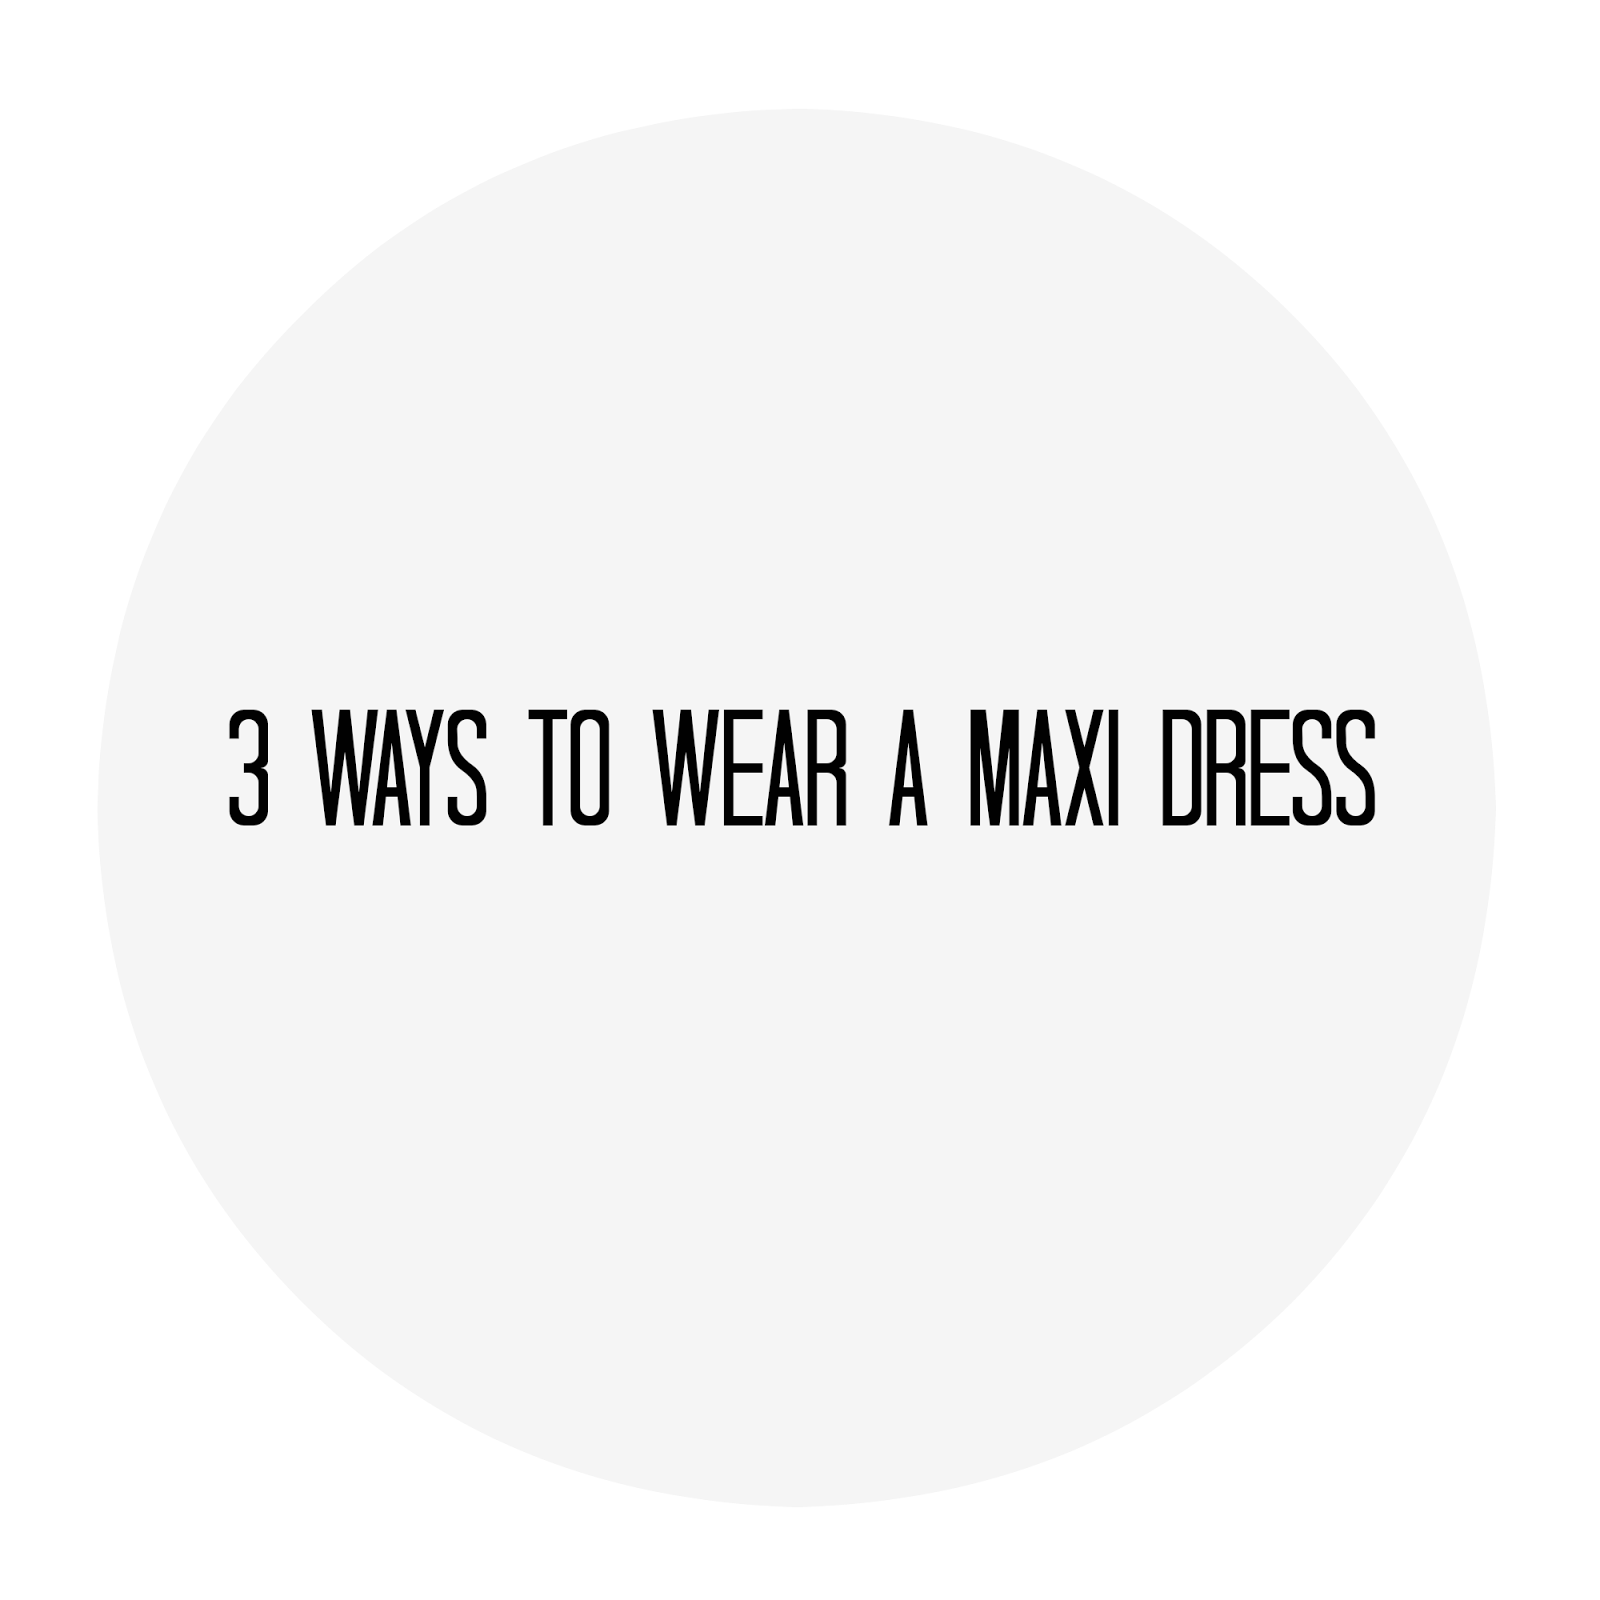 3 ways to wear a maxi dress